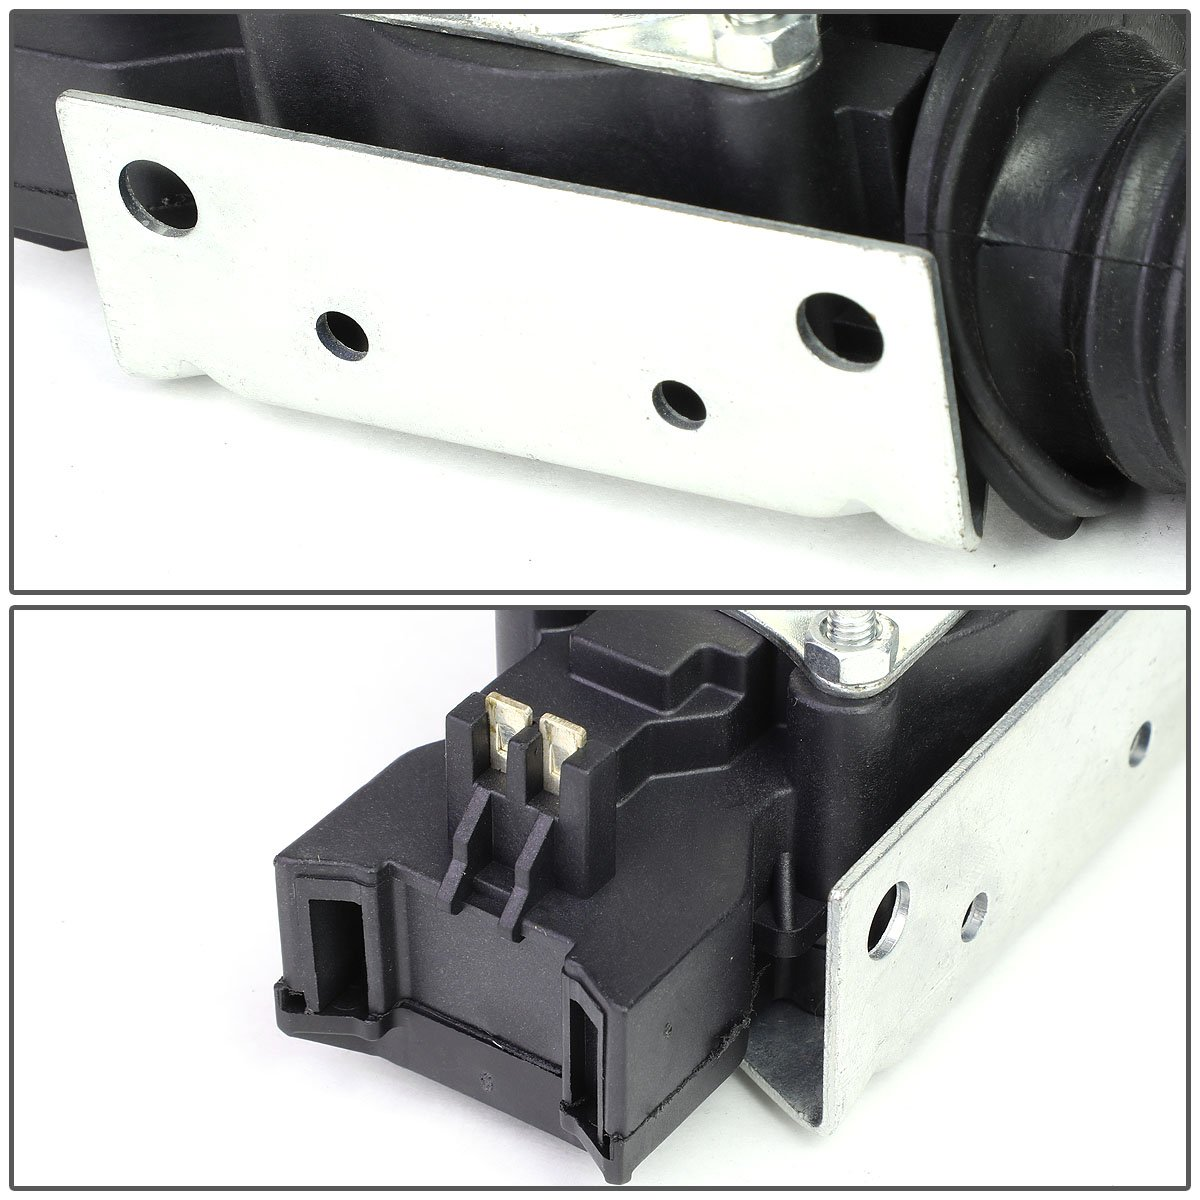 For Chevy//GMC//Buick//Cadillac OE Fitment Universal 12-Volt High Power Heavy Duty Door Lock Actuator